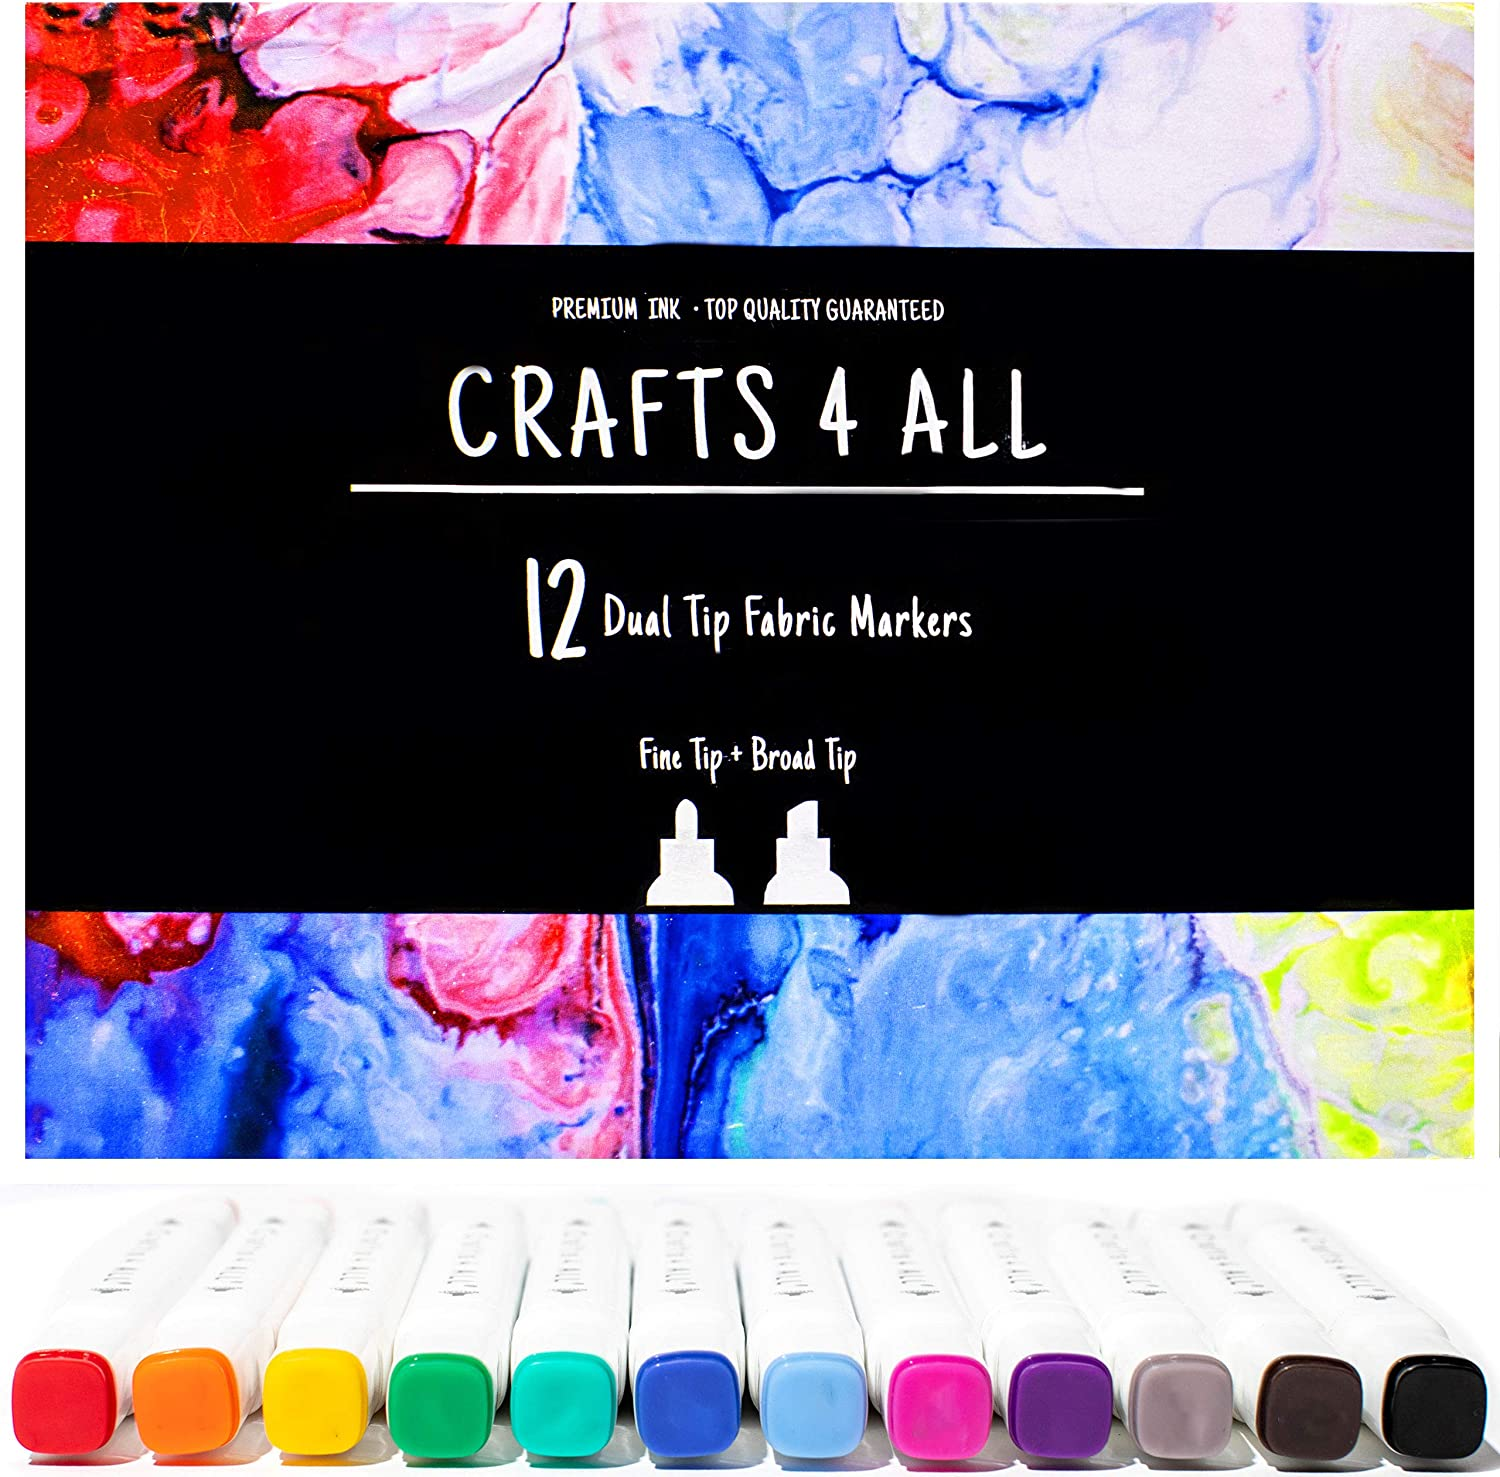 Crafts 4 ALL Fabric Markers Pens Permanent 12 Bright Dual TIP Fabric Paint, Child Safe, Water-Based & Non-Toxic. Markers Stained fine Writers Art